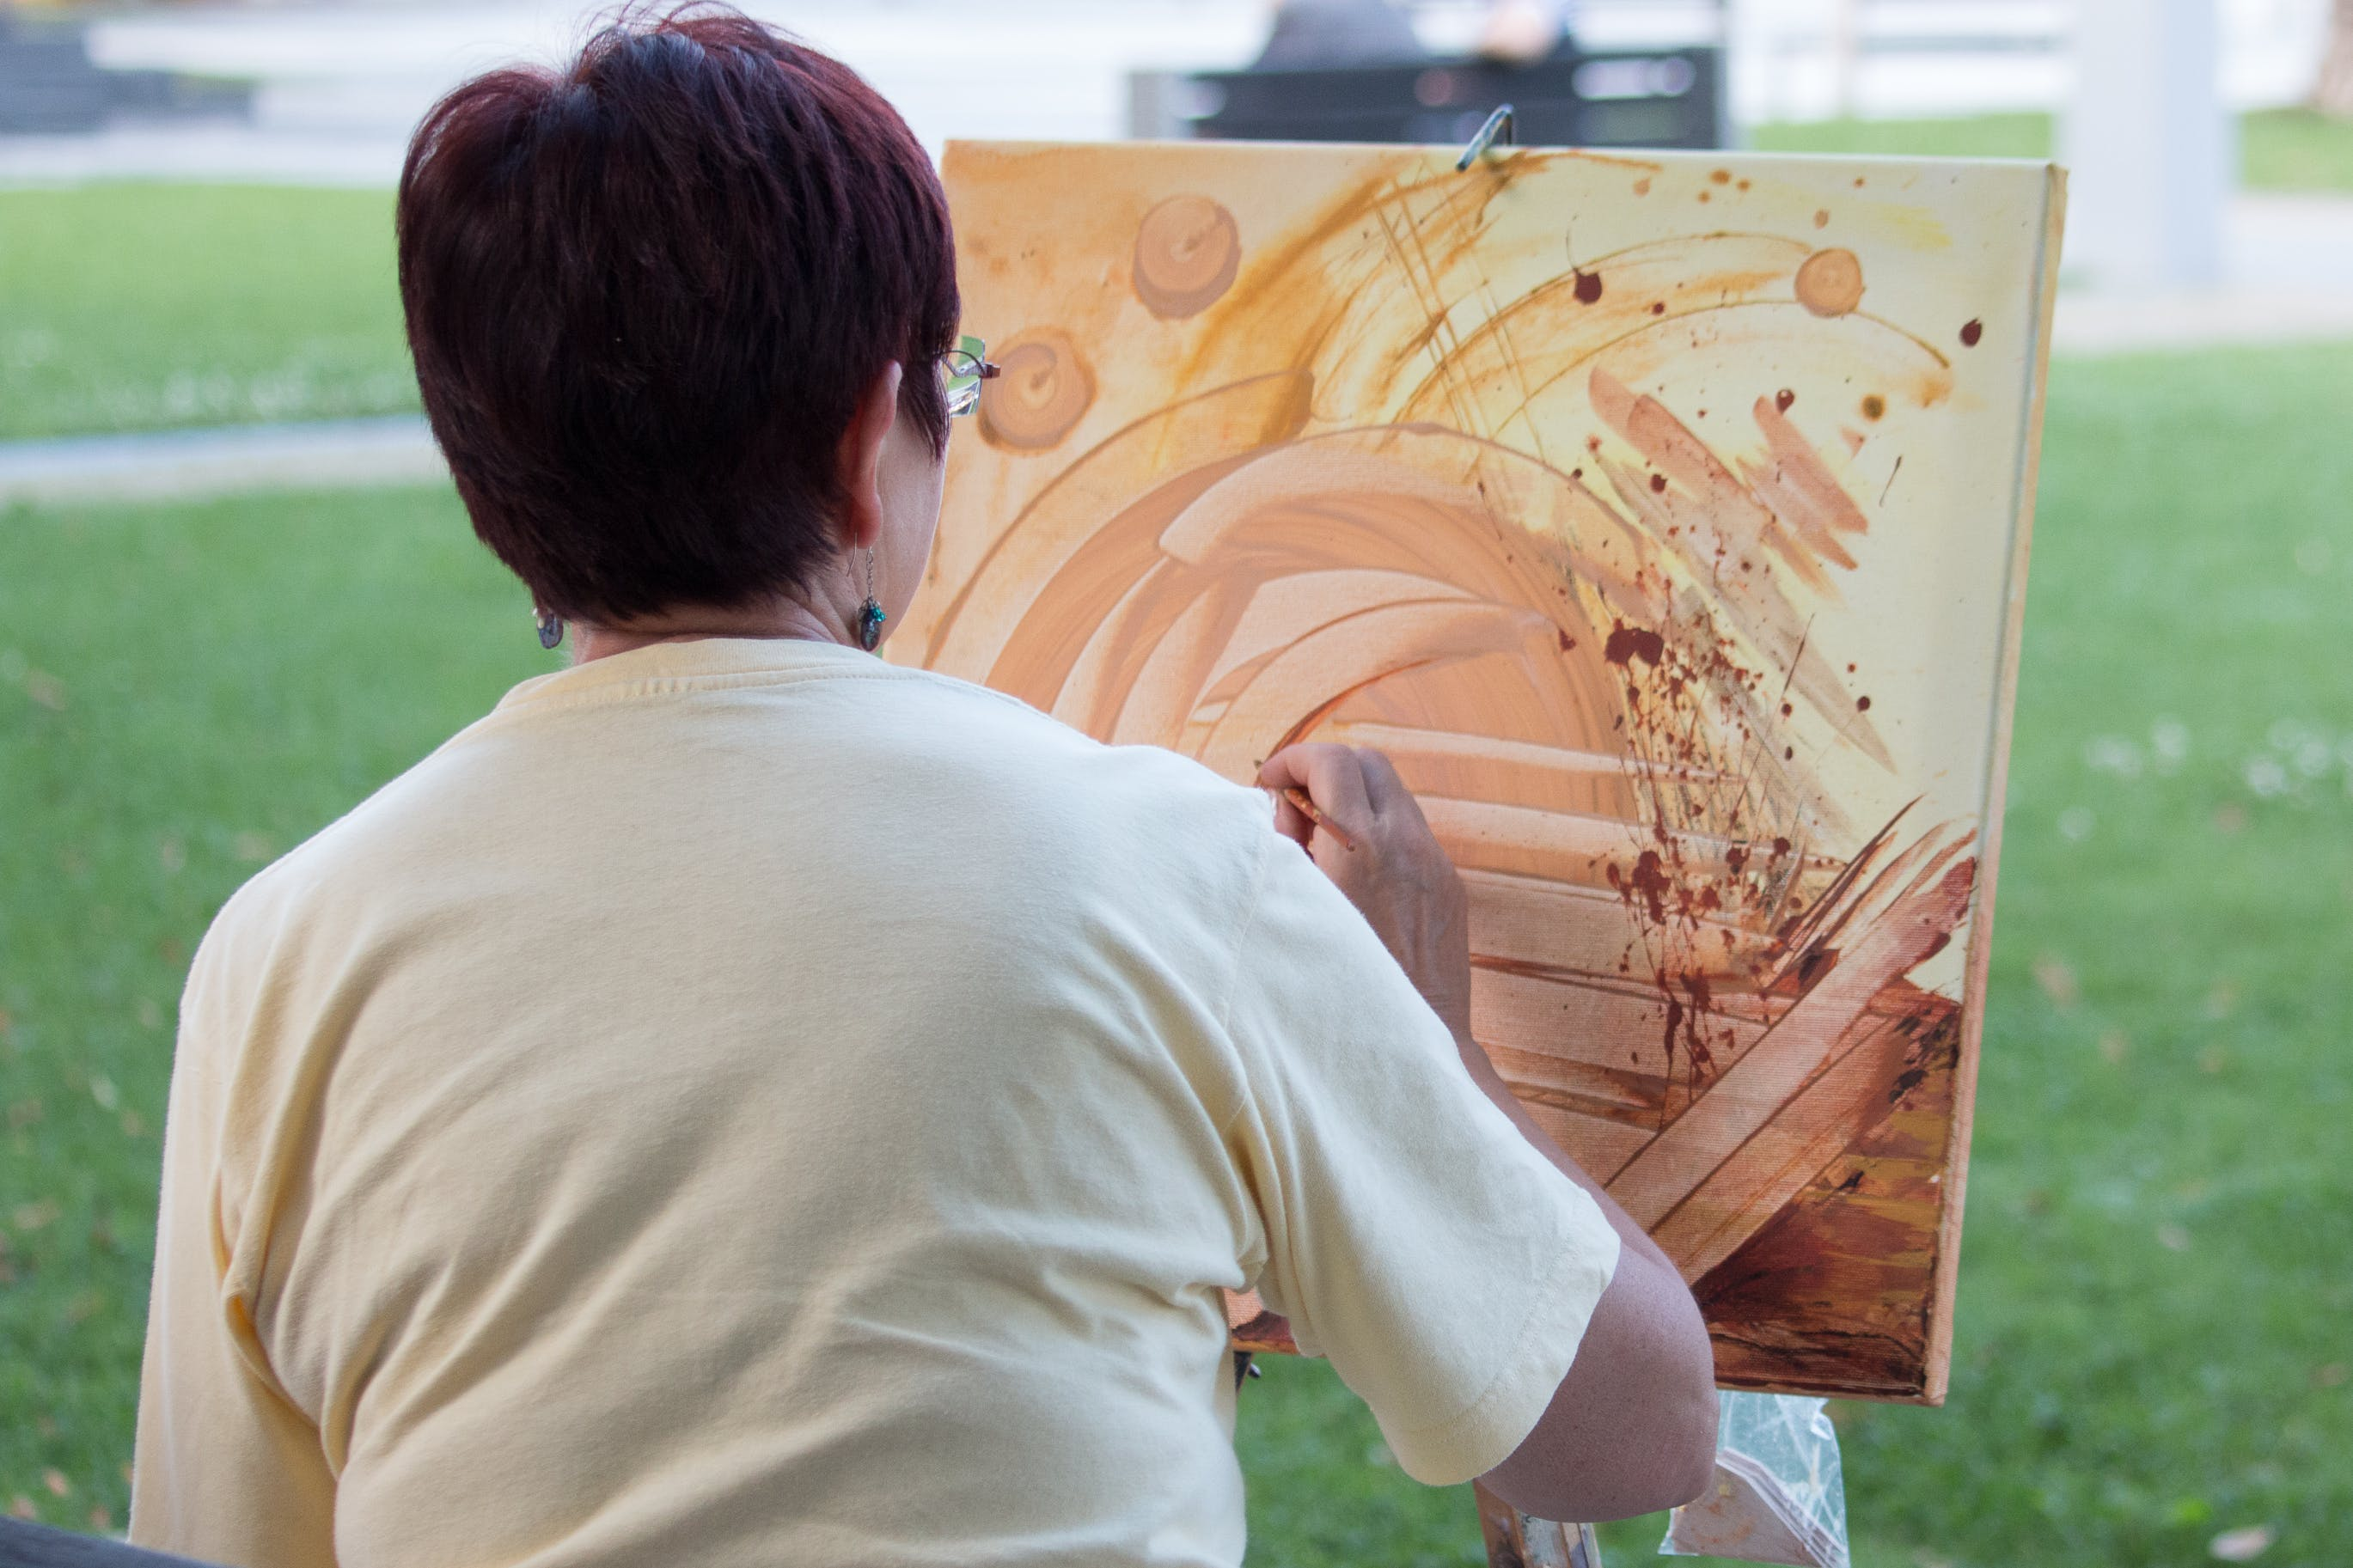 Abstract painting by woman outdoors